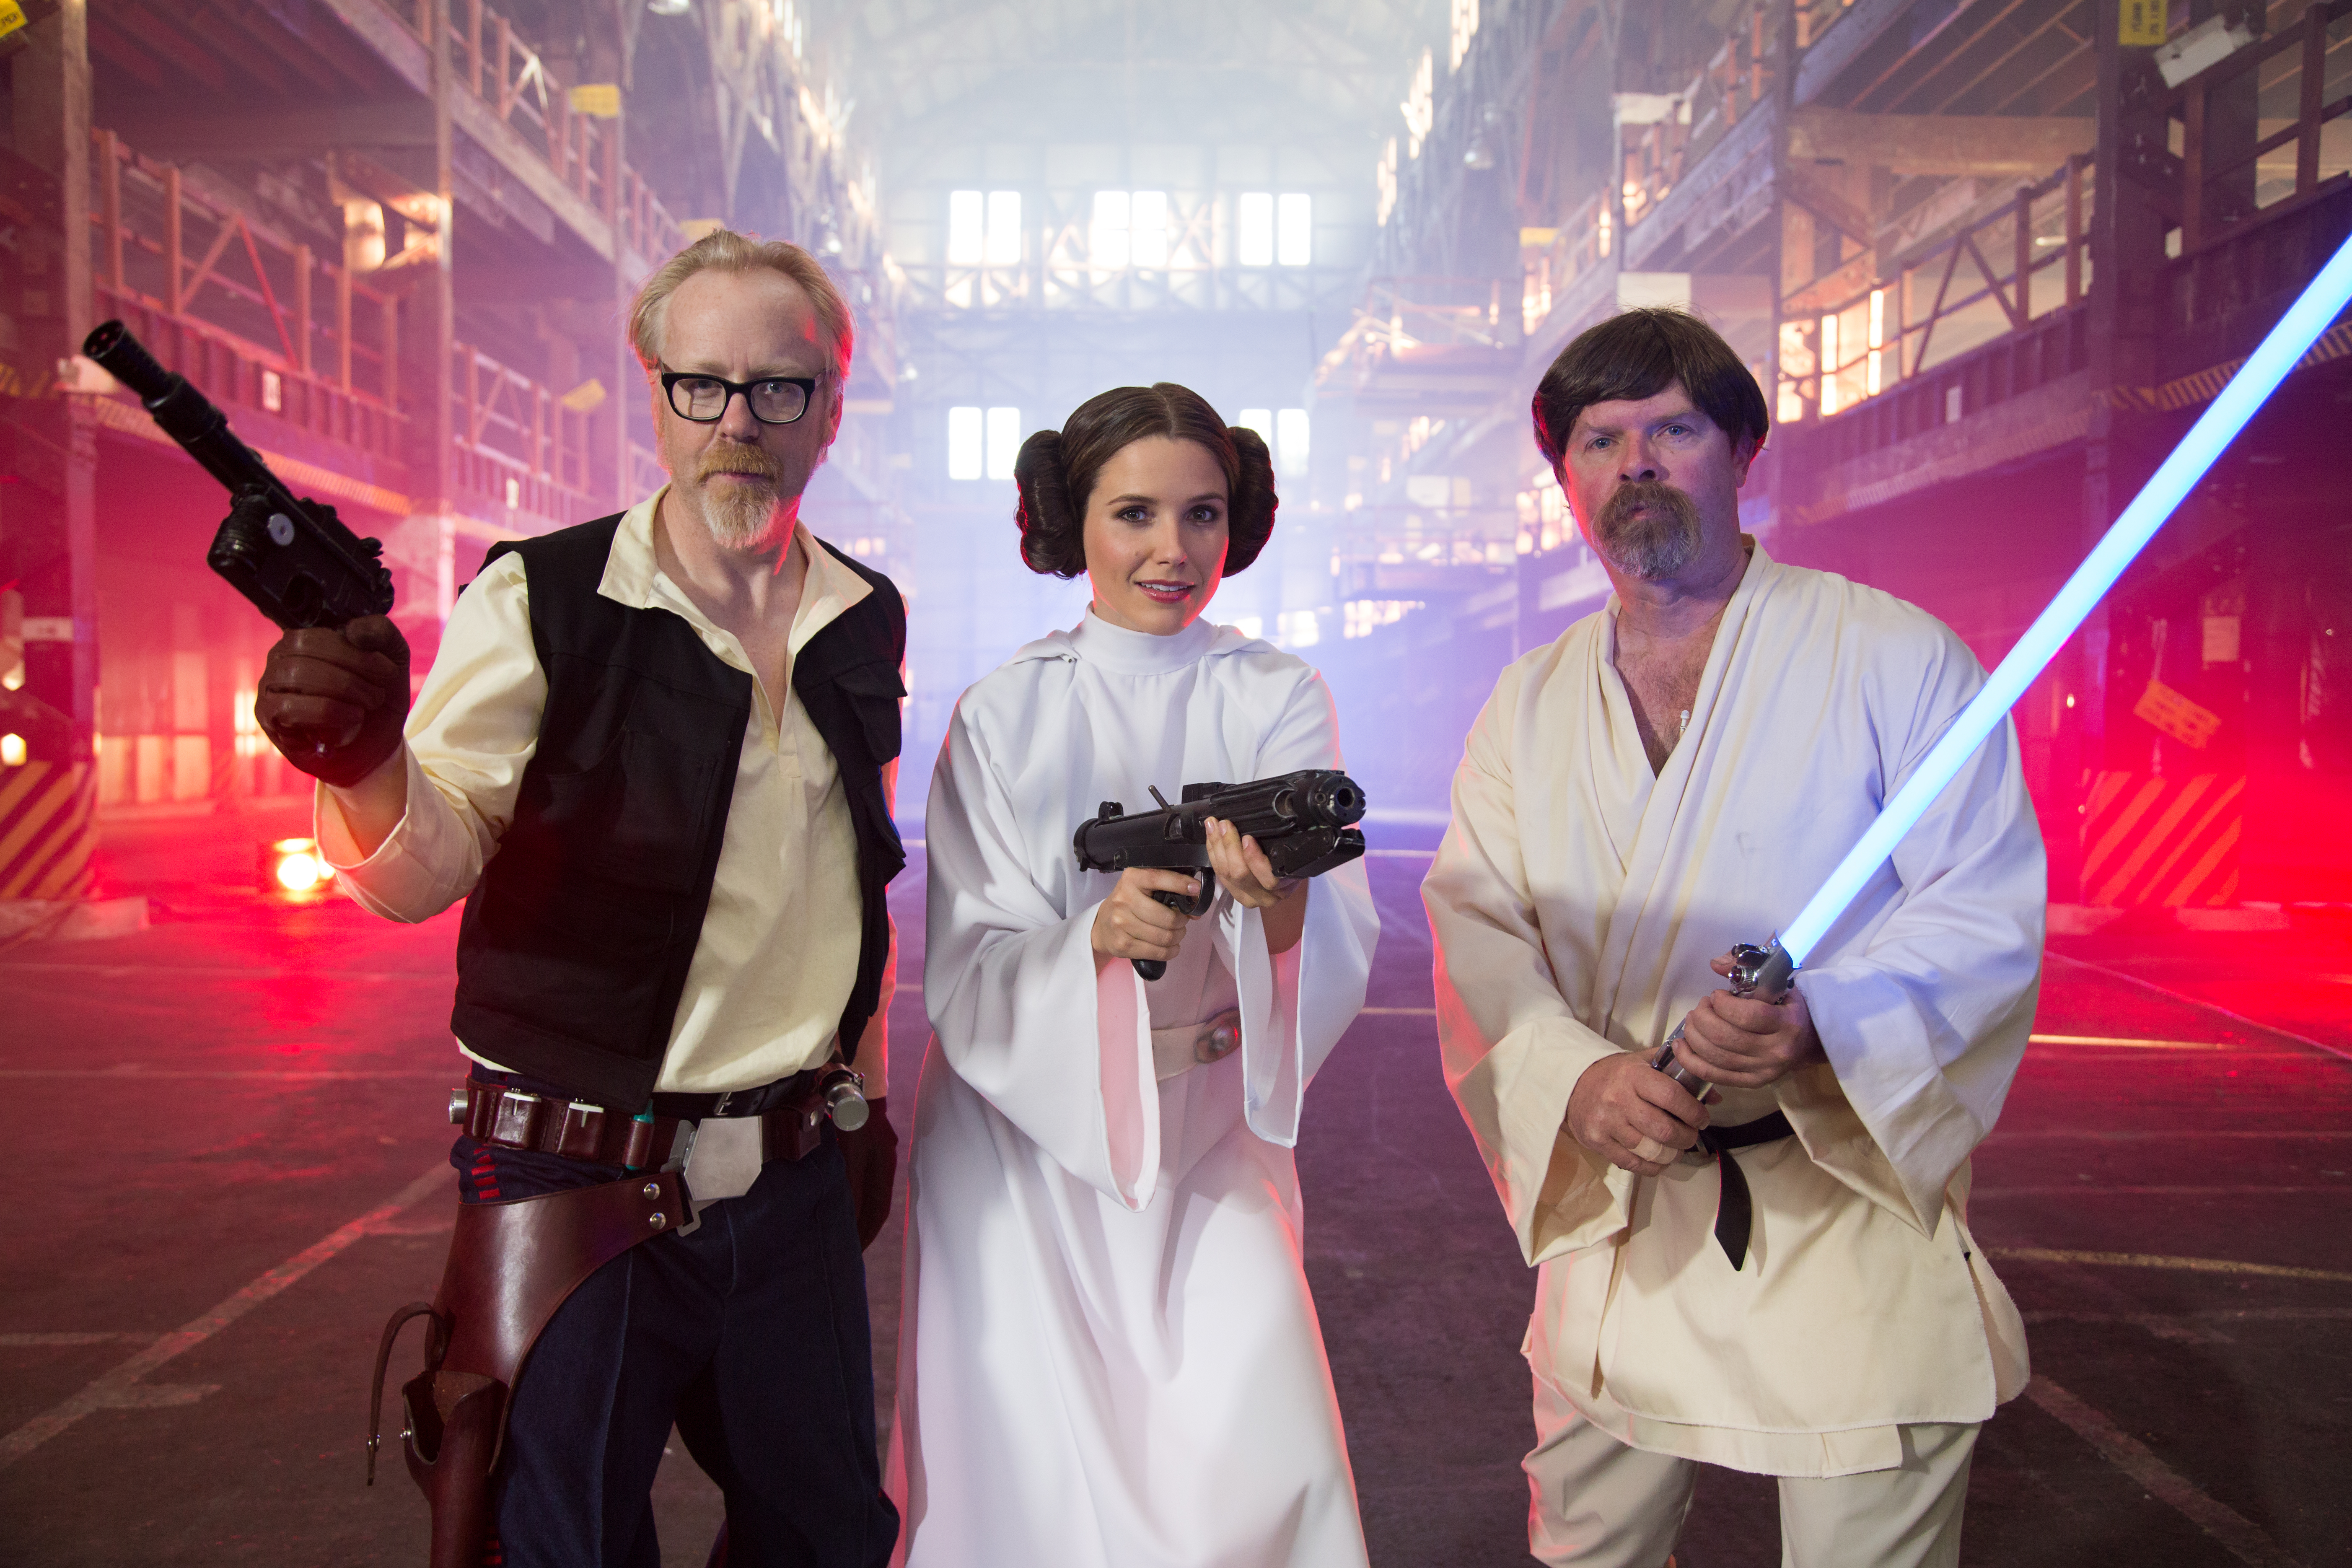 """Look out, Darth Vader! Adam """"Solo"""" Savage, Princess Sophia Bush, and Jedi Jamie Hyneman are ready for action in the """"MythBusters Star Wars Special,"""" airing January 4 on the Discovery Channel."""